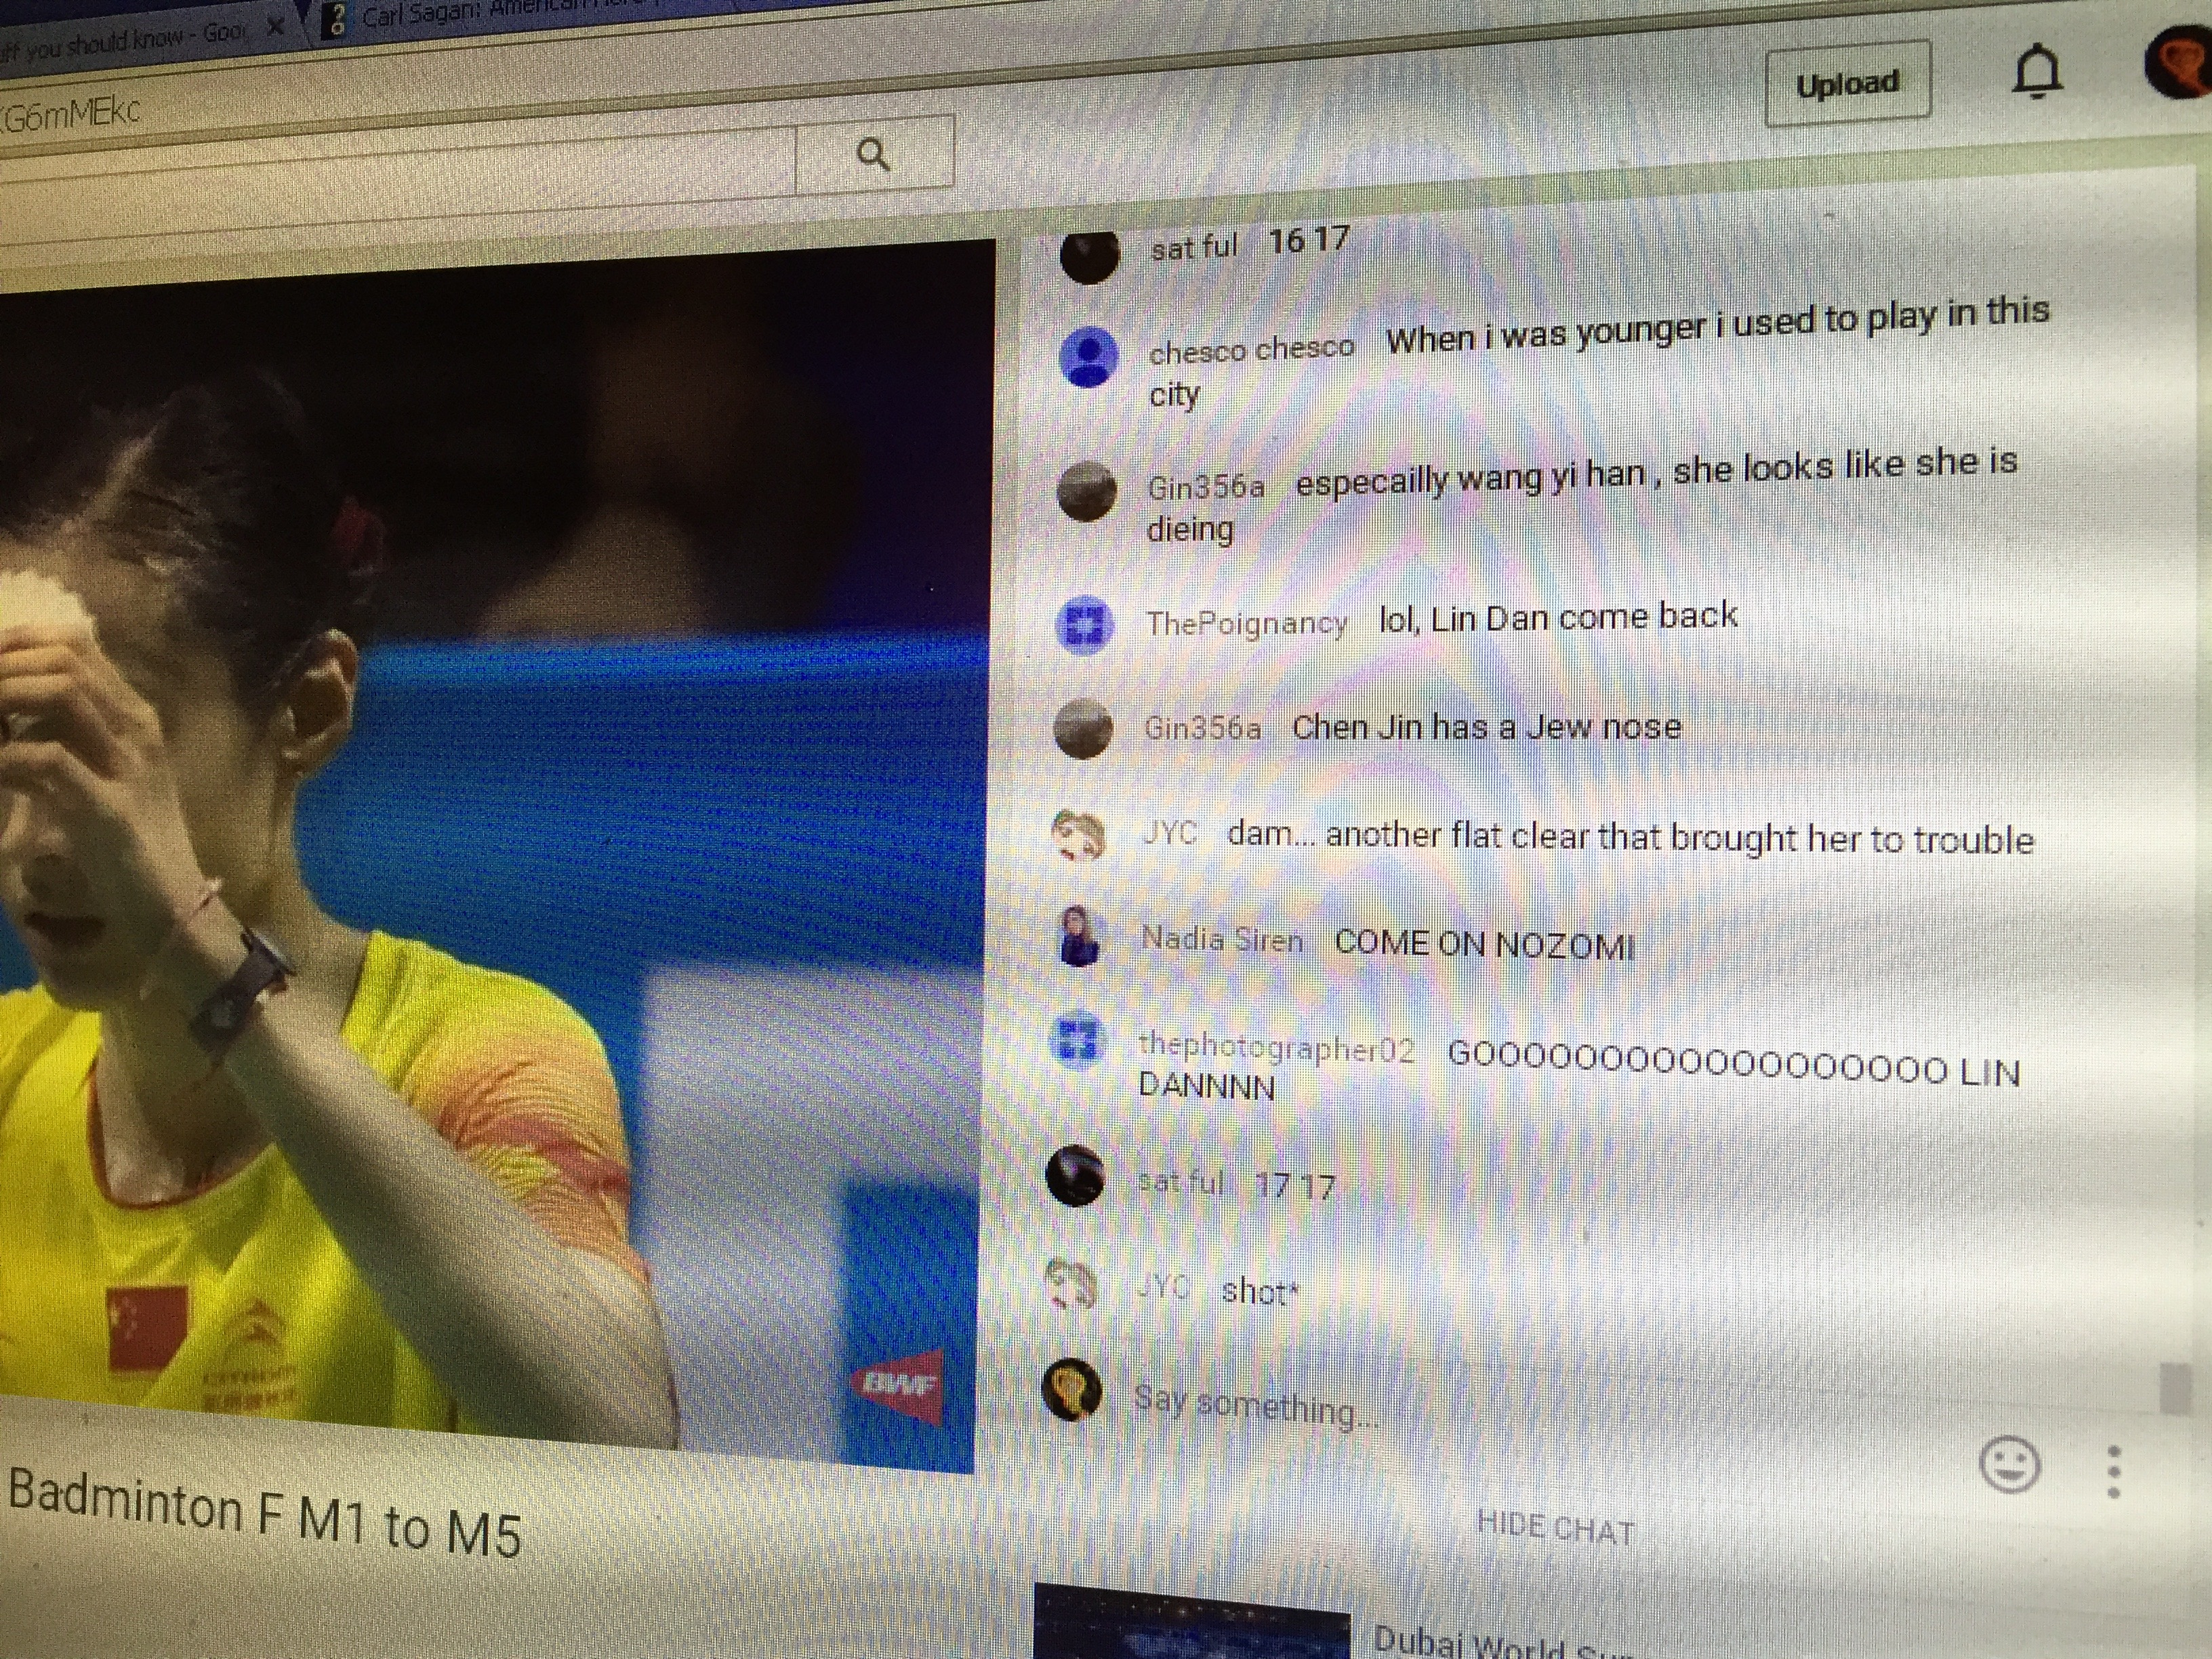 Badminton youtube comments